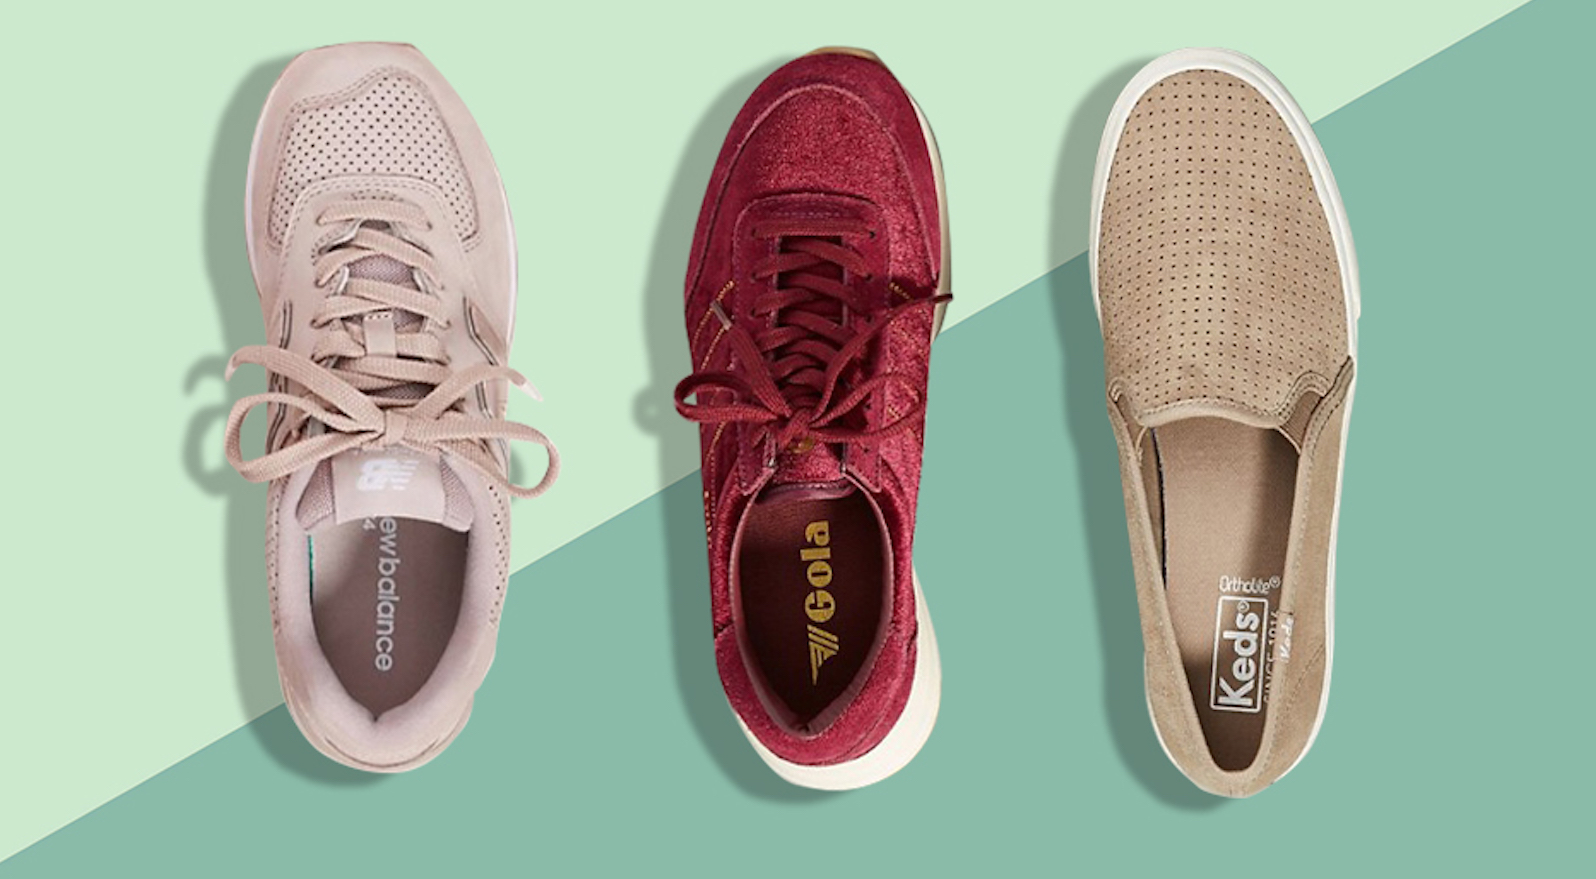 Anthropologie Has Major Deals on the Comfiest Travel Shoes Right Now